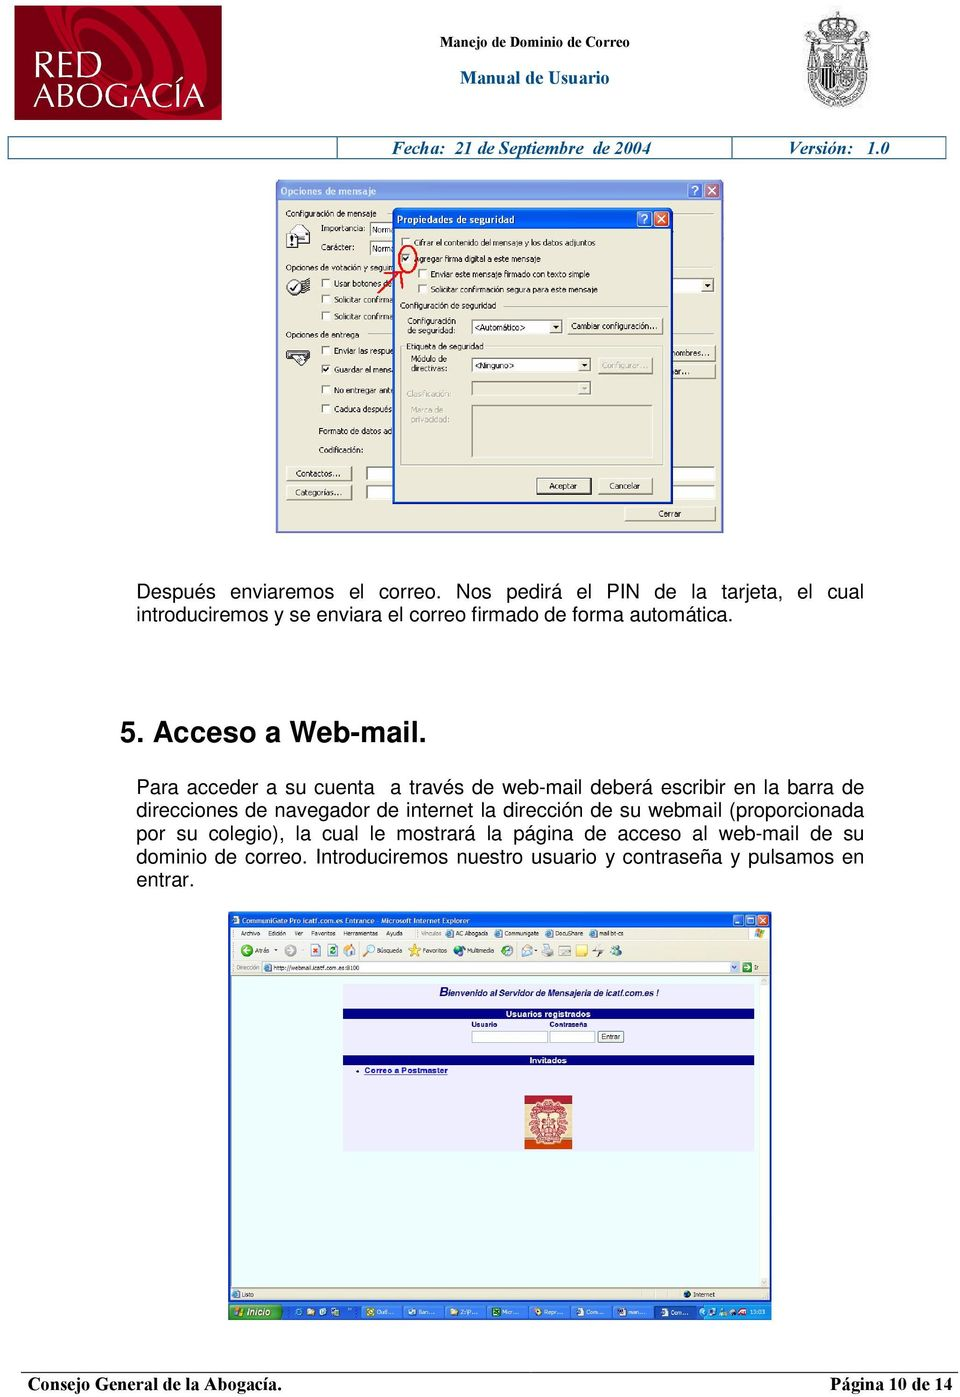 Acceso a Web-mail.